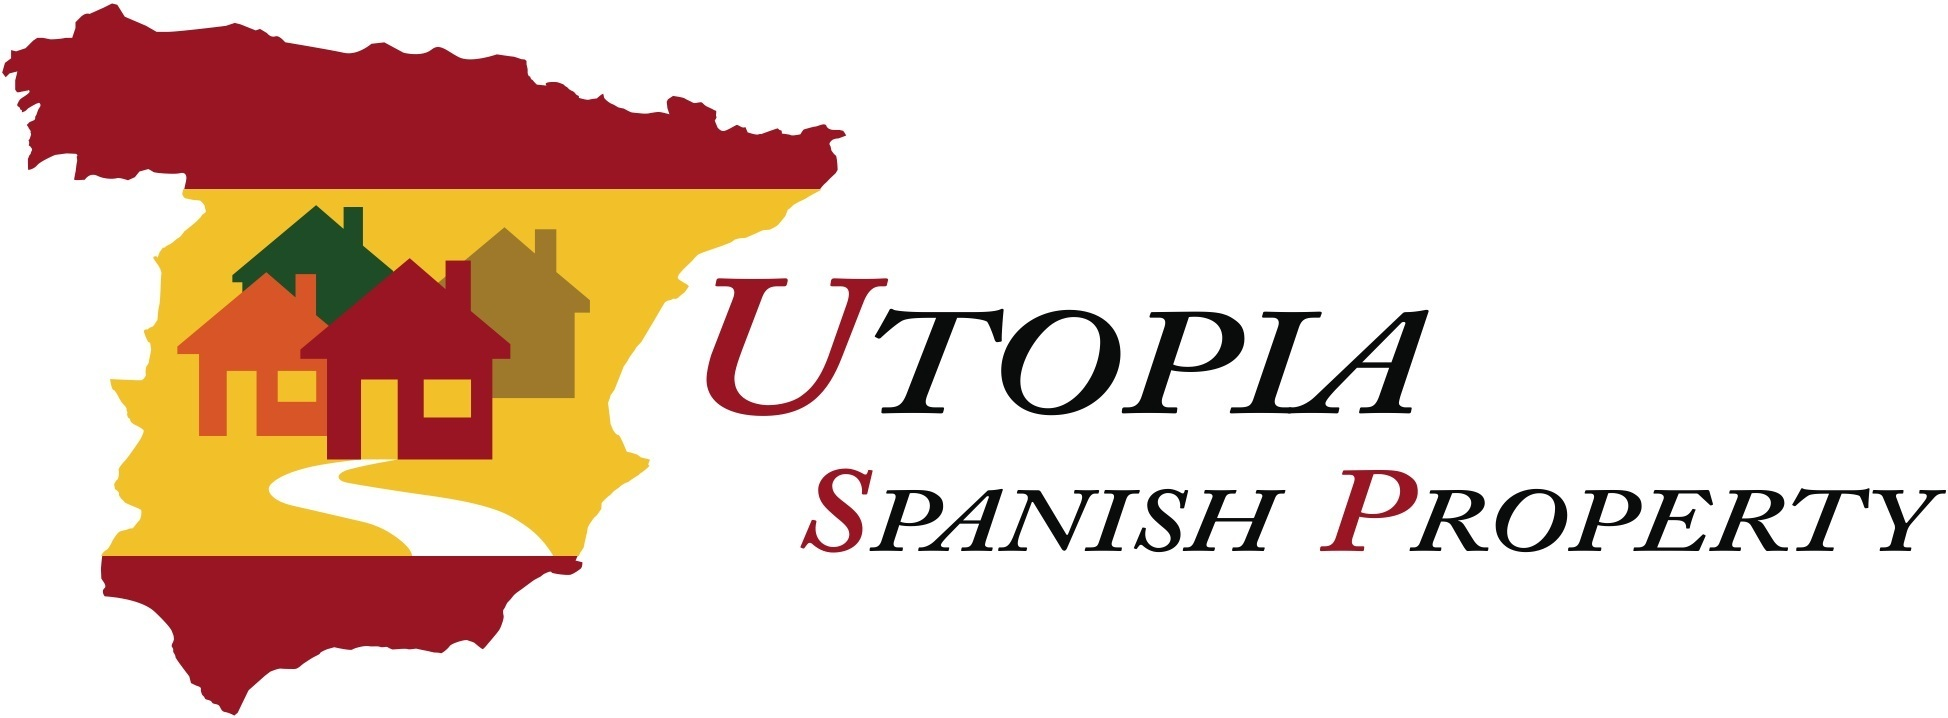 Utopia Spanish Property